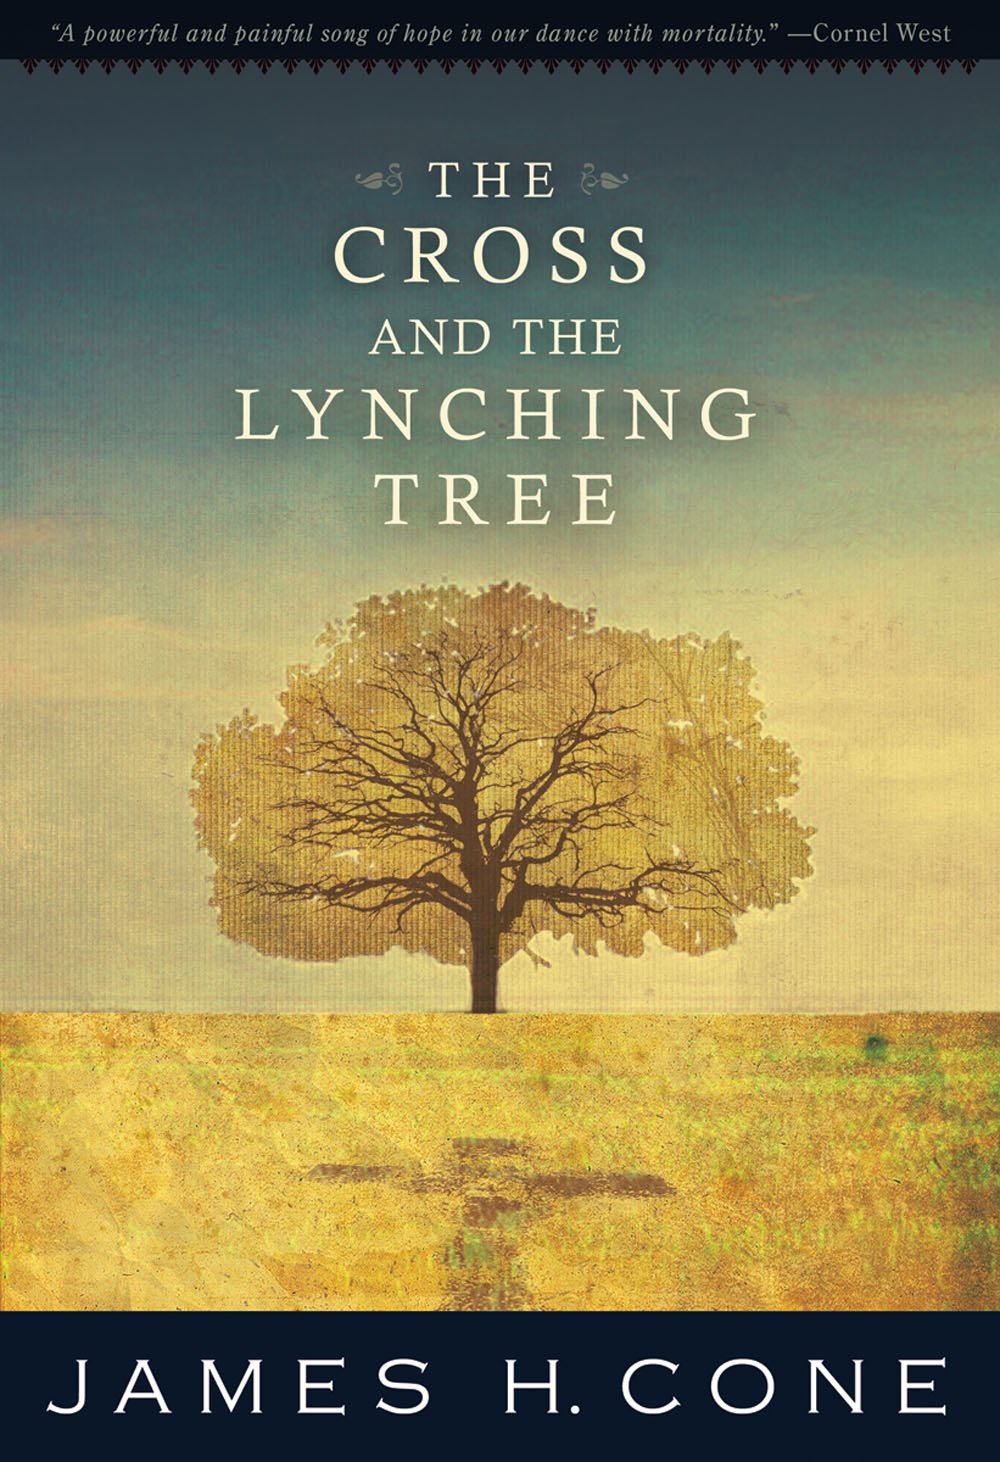 cross_and_lynching_tree.jpg